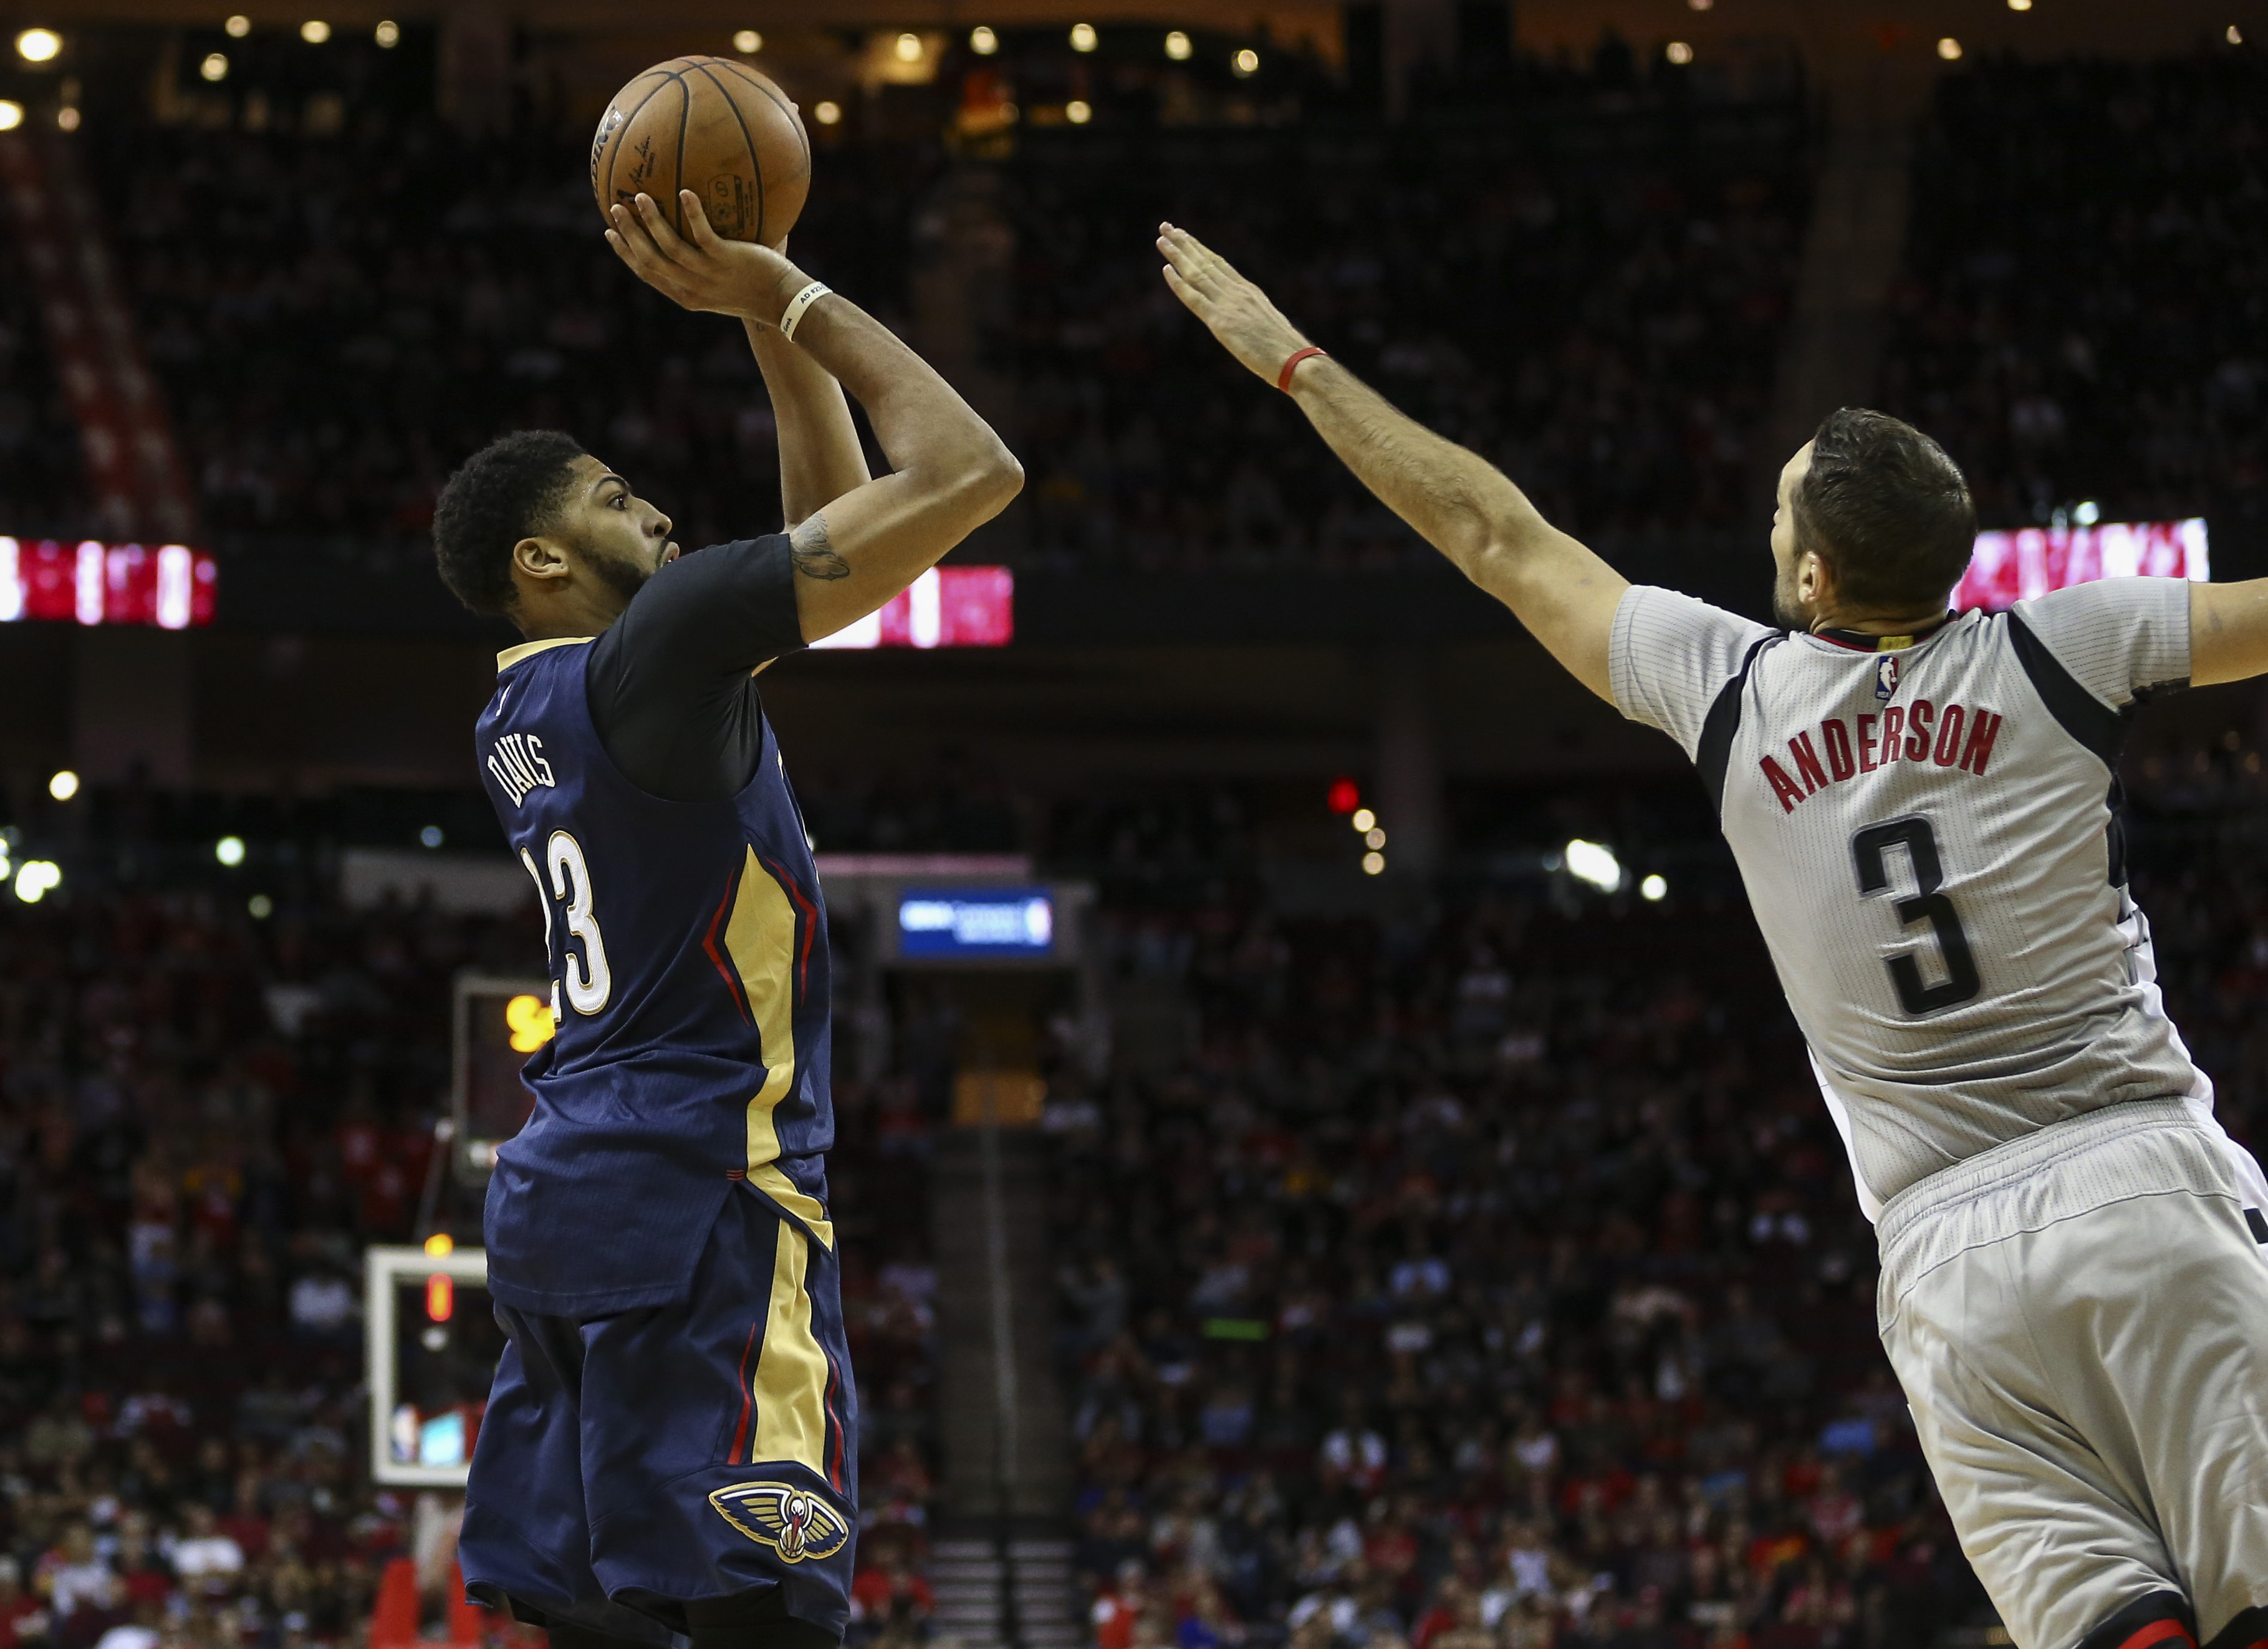 9749763-nba-new-orleans-pelicans-at-houston-rockets